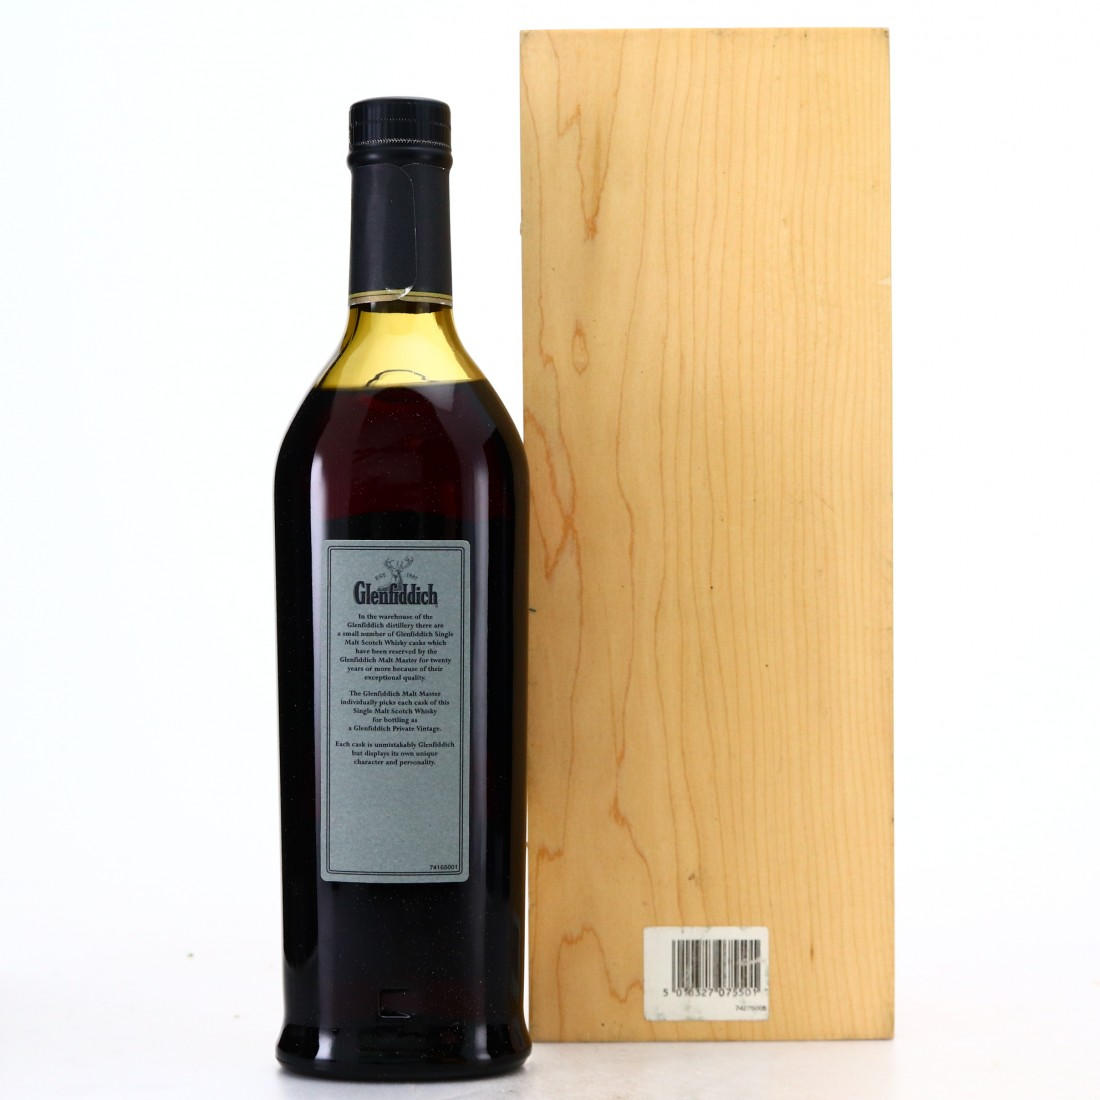 Glenfiddich 1958 Private Vintage #8642 / World of Whiskies